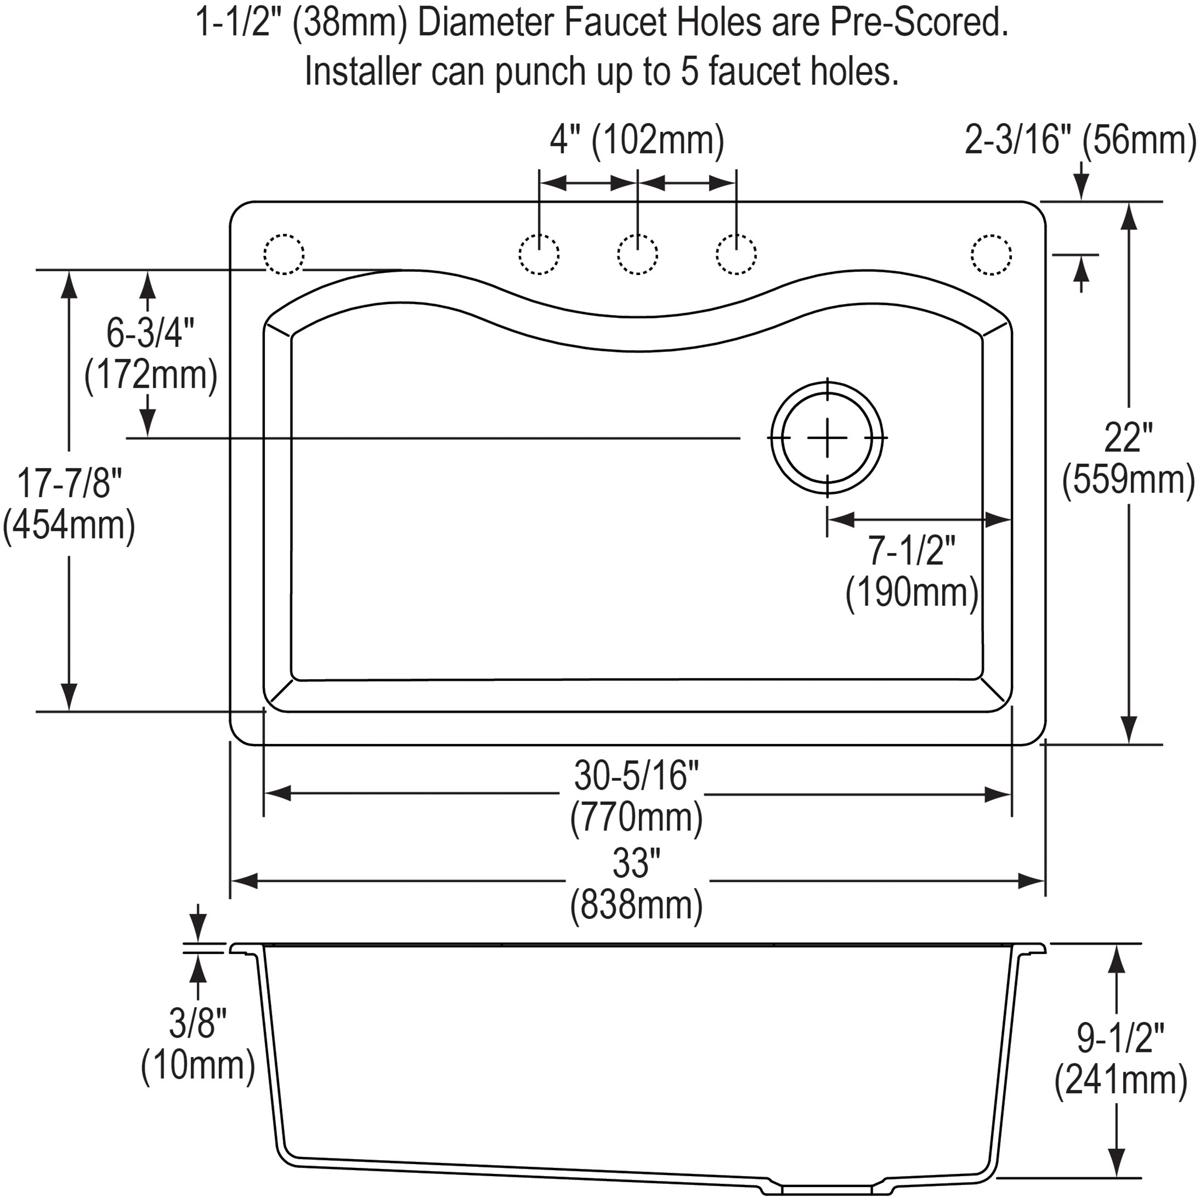 Elkay Elgs3322rbq0 Bisque Harmony 33 Single Basin Granite Composite Wiring Diagram Kitchen Sink For Drop In Installations With 5 Pre Scored Faucet Holes